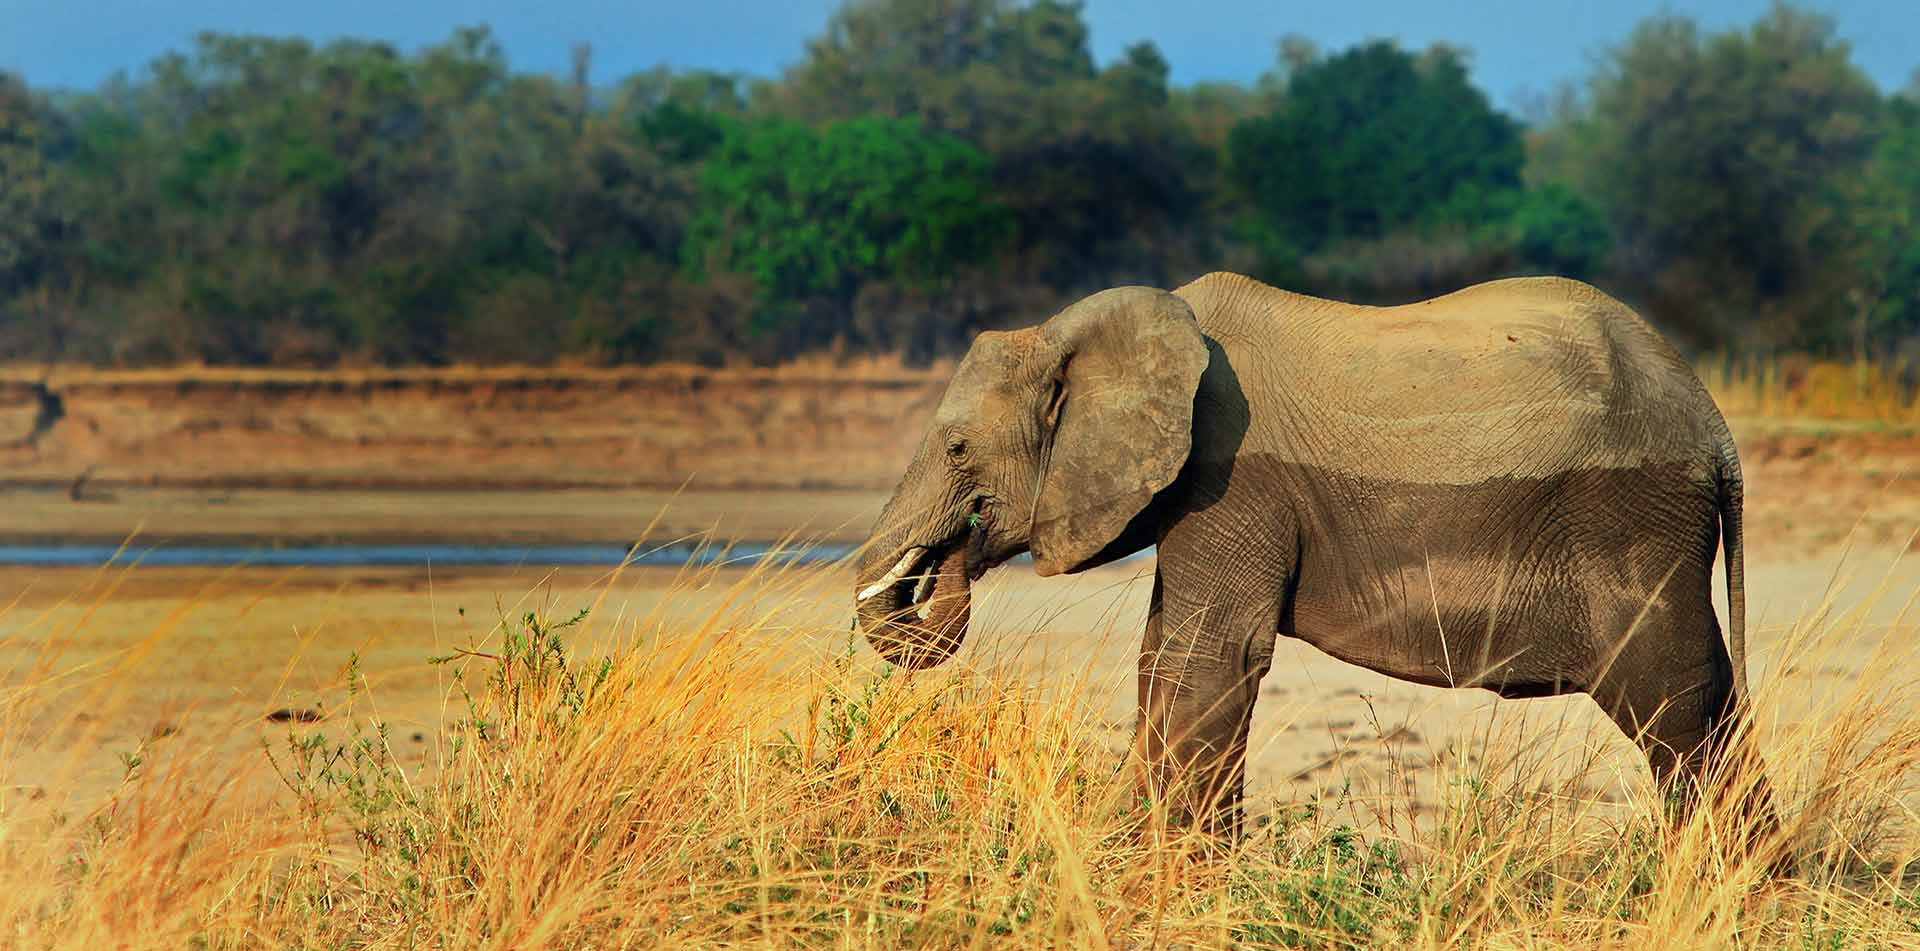 Africa Zambia Luangwa National Park safari wild elephant eating remote dry landscape - luxury vacation destinations